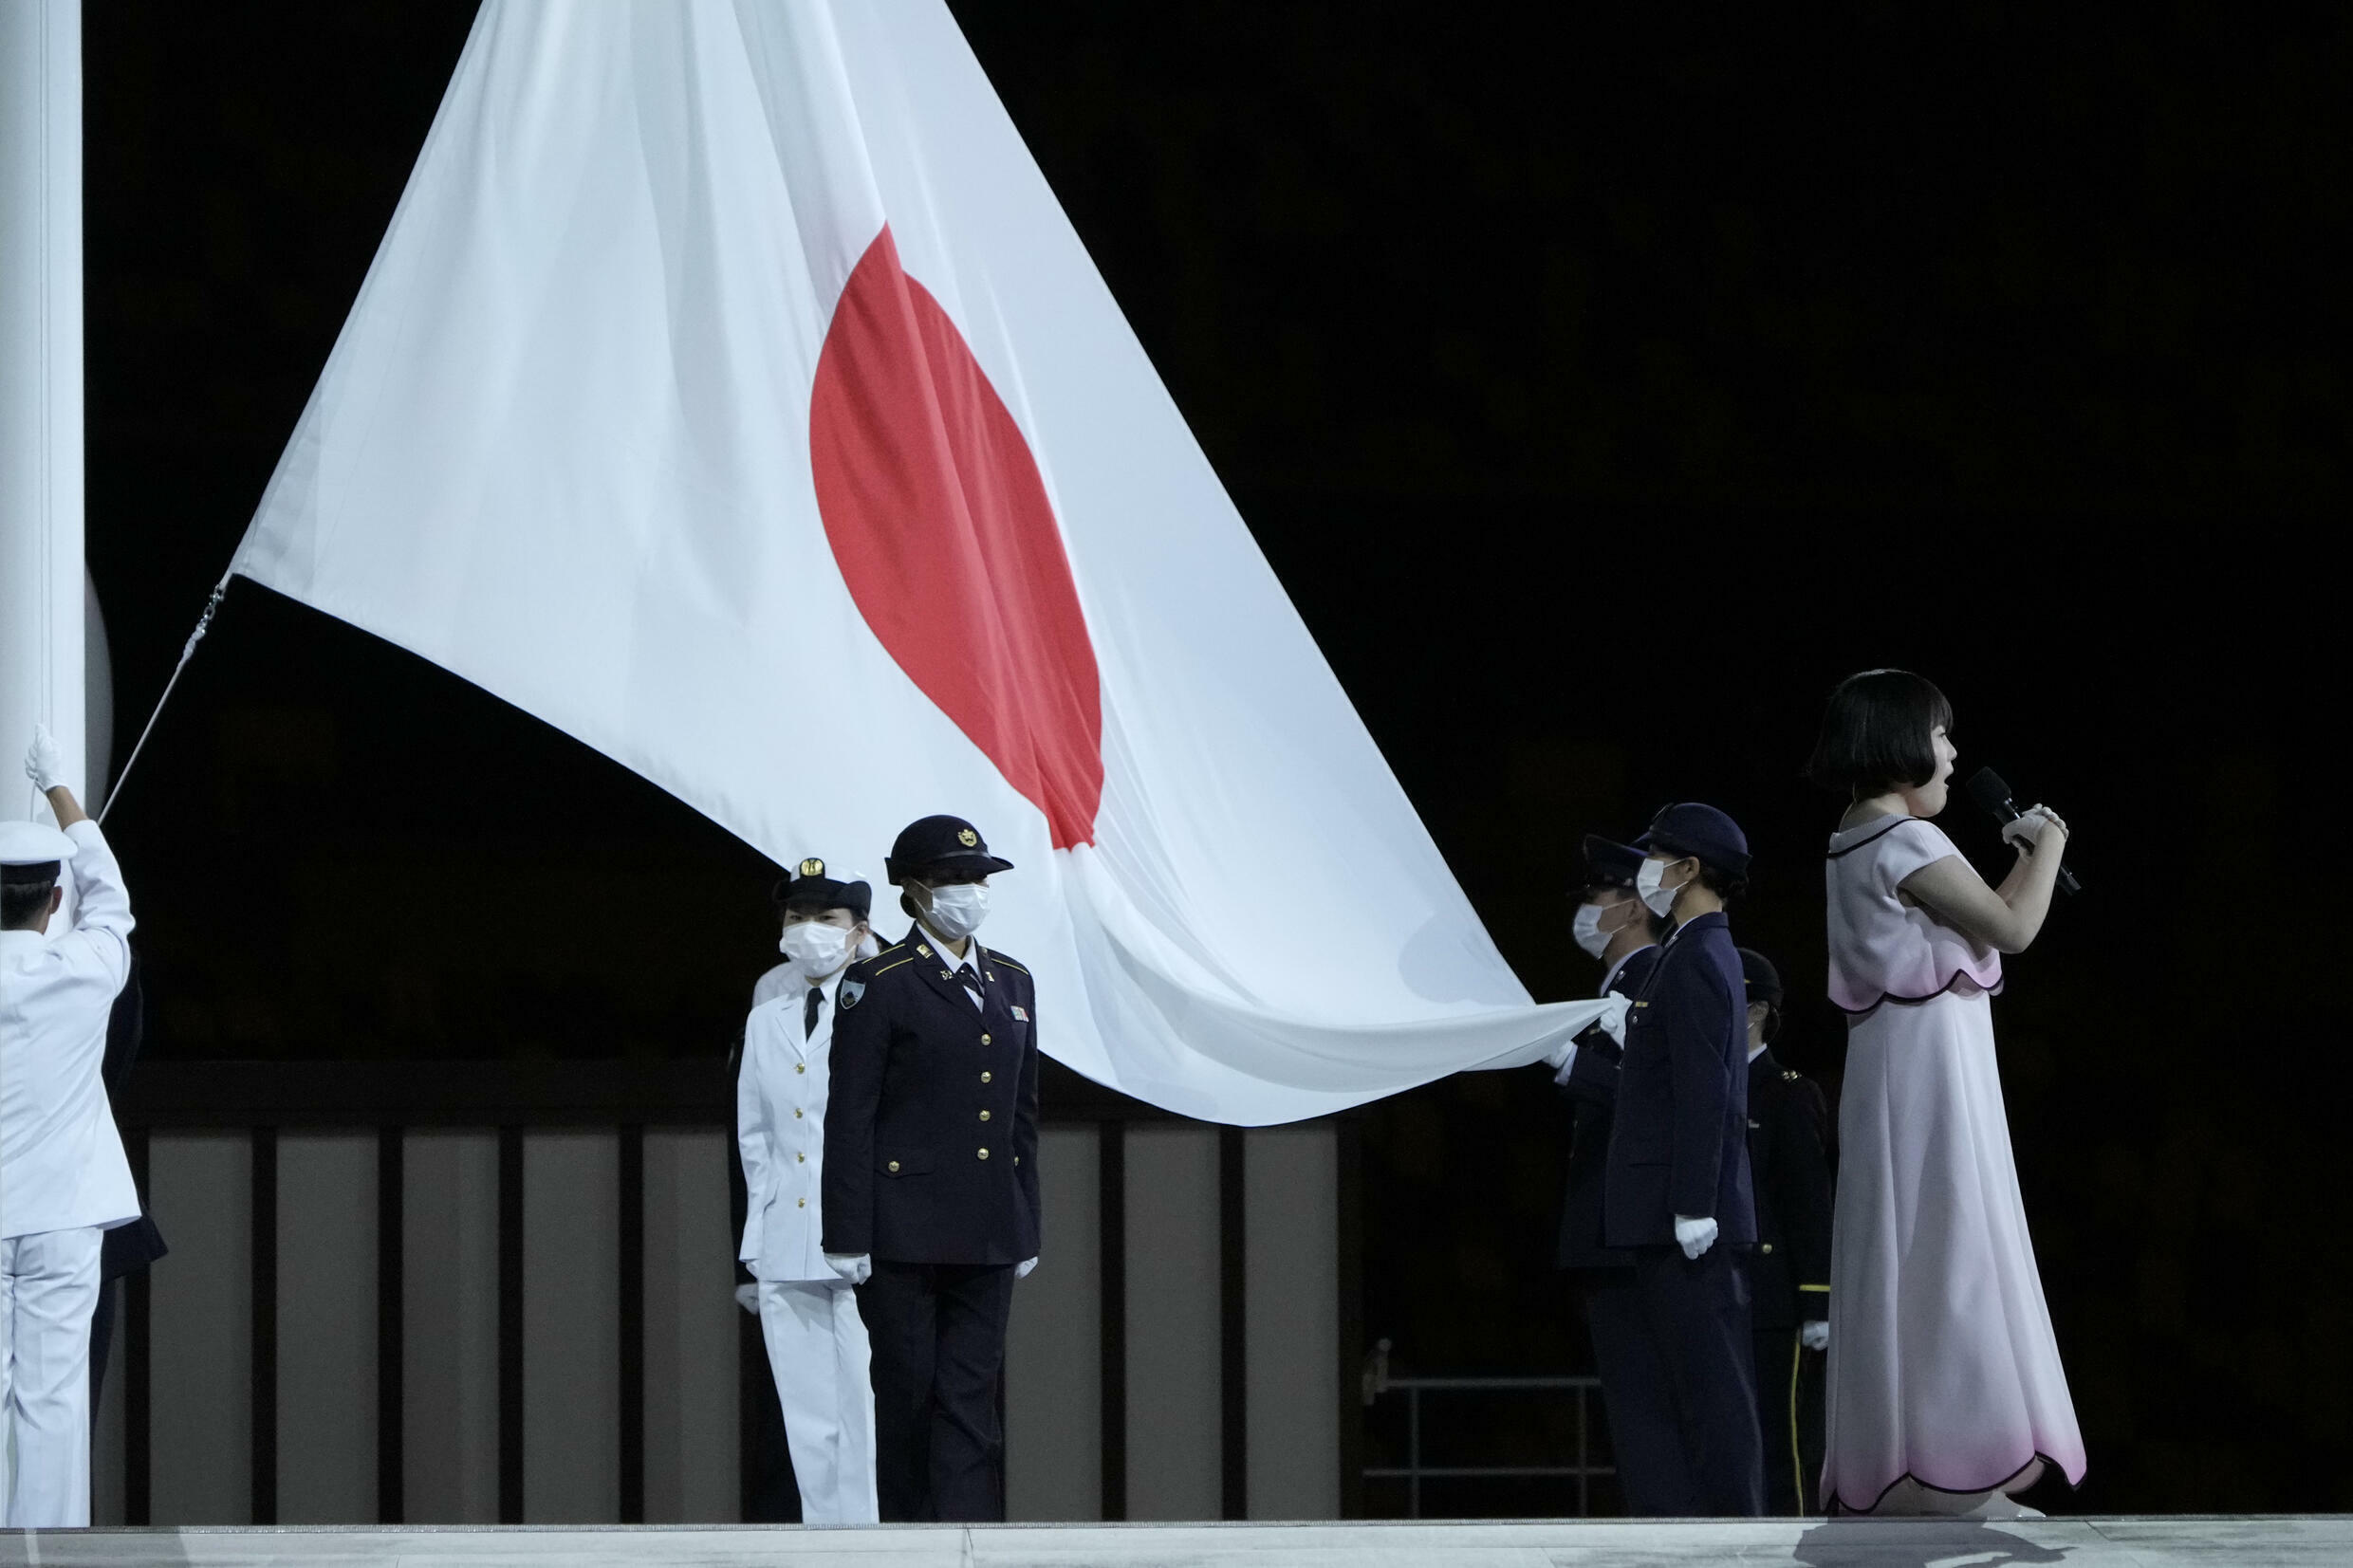 The Japanese flag, during the opening ceremony of the Paralympic Games in Tokyo, Japan, on August 24, 2021